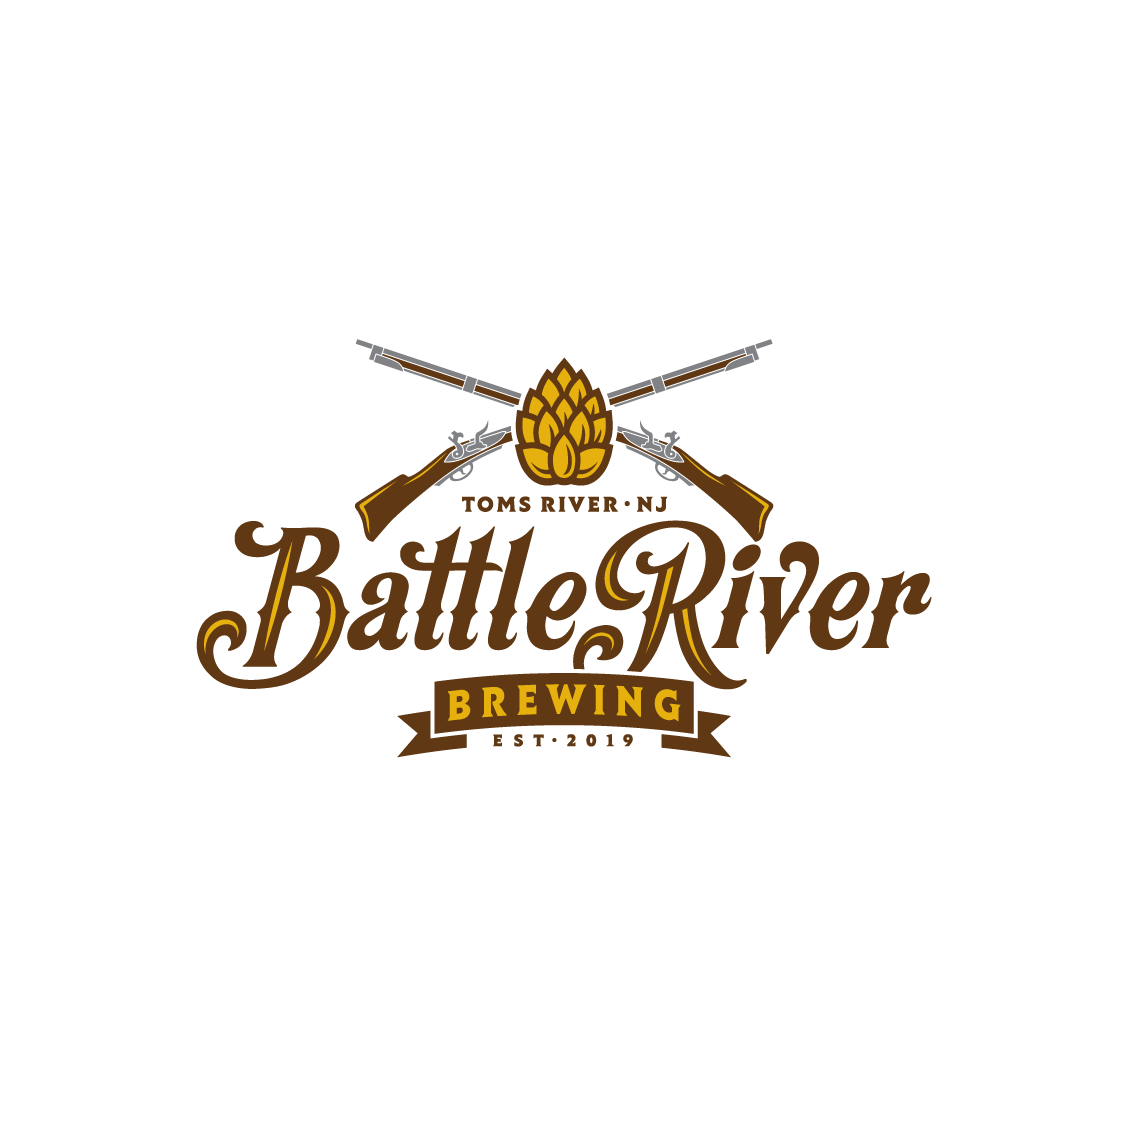 Battle River Brewing - Design a Logo for a New Up and Coming US Brewery